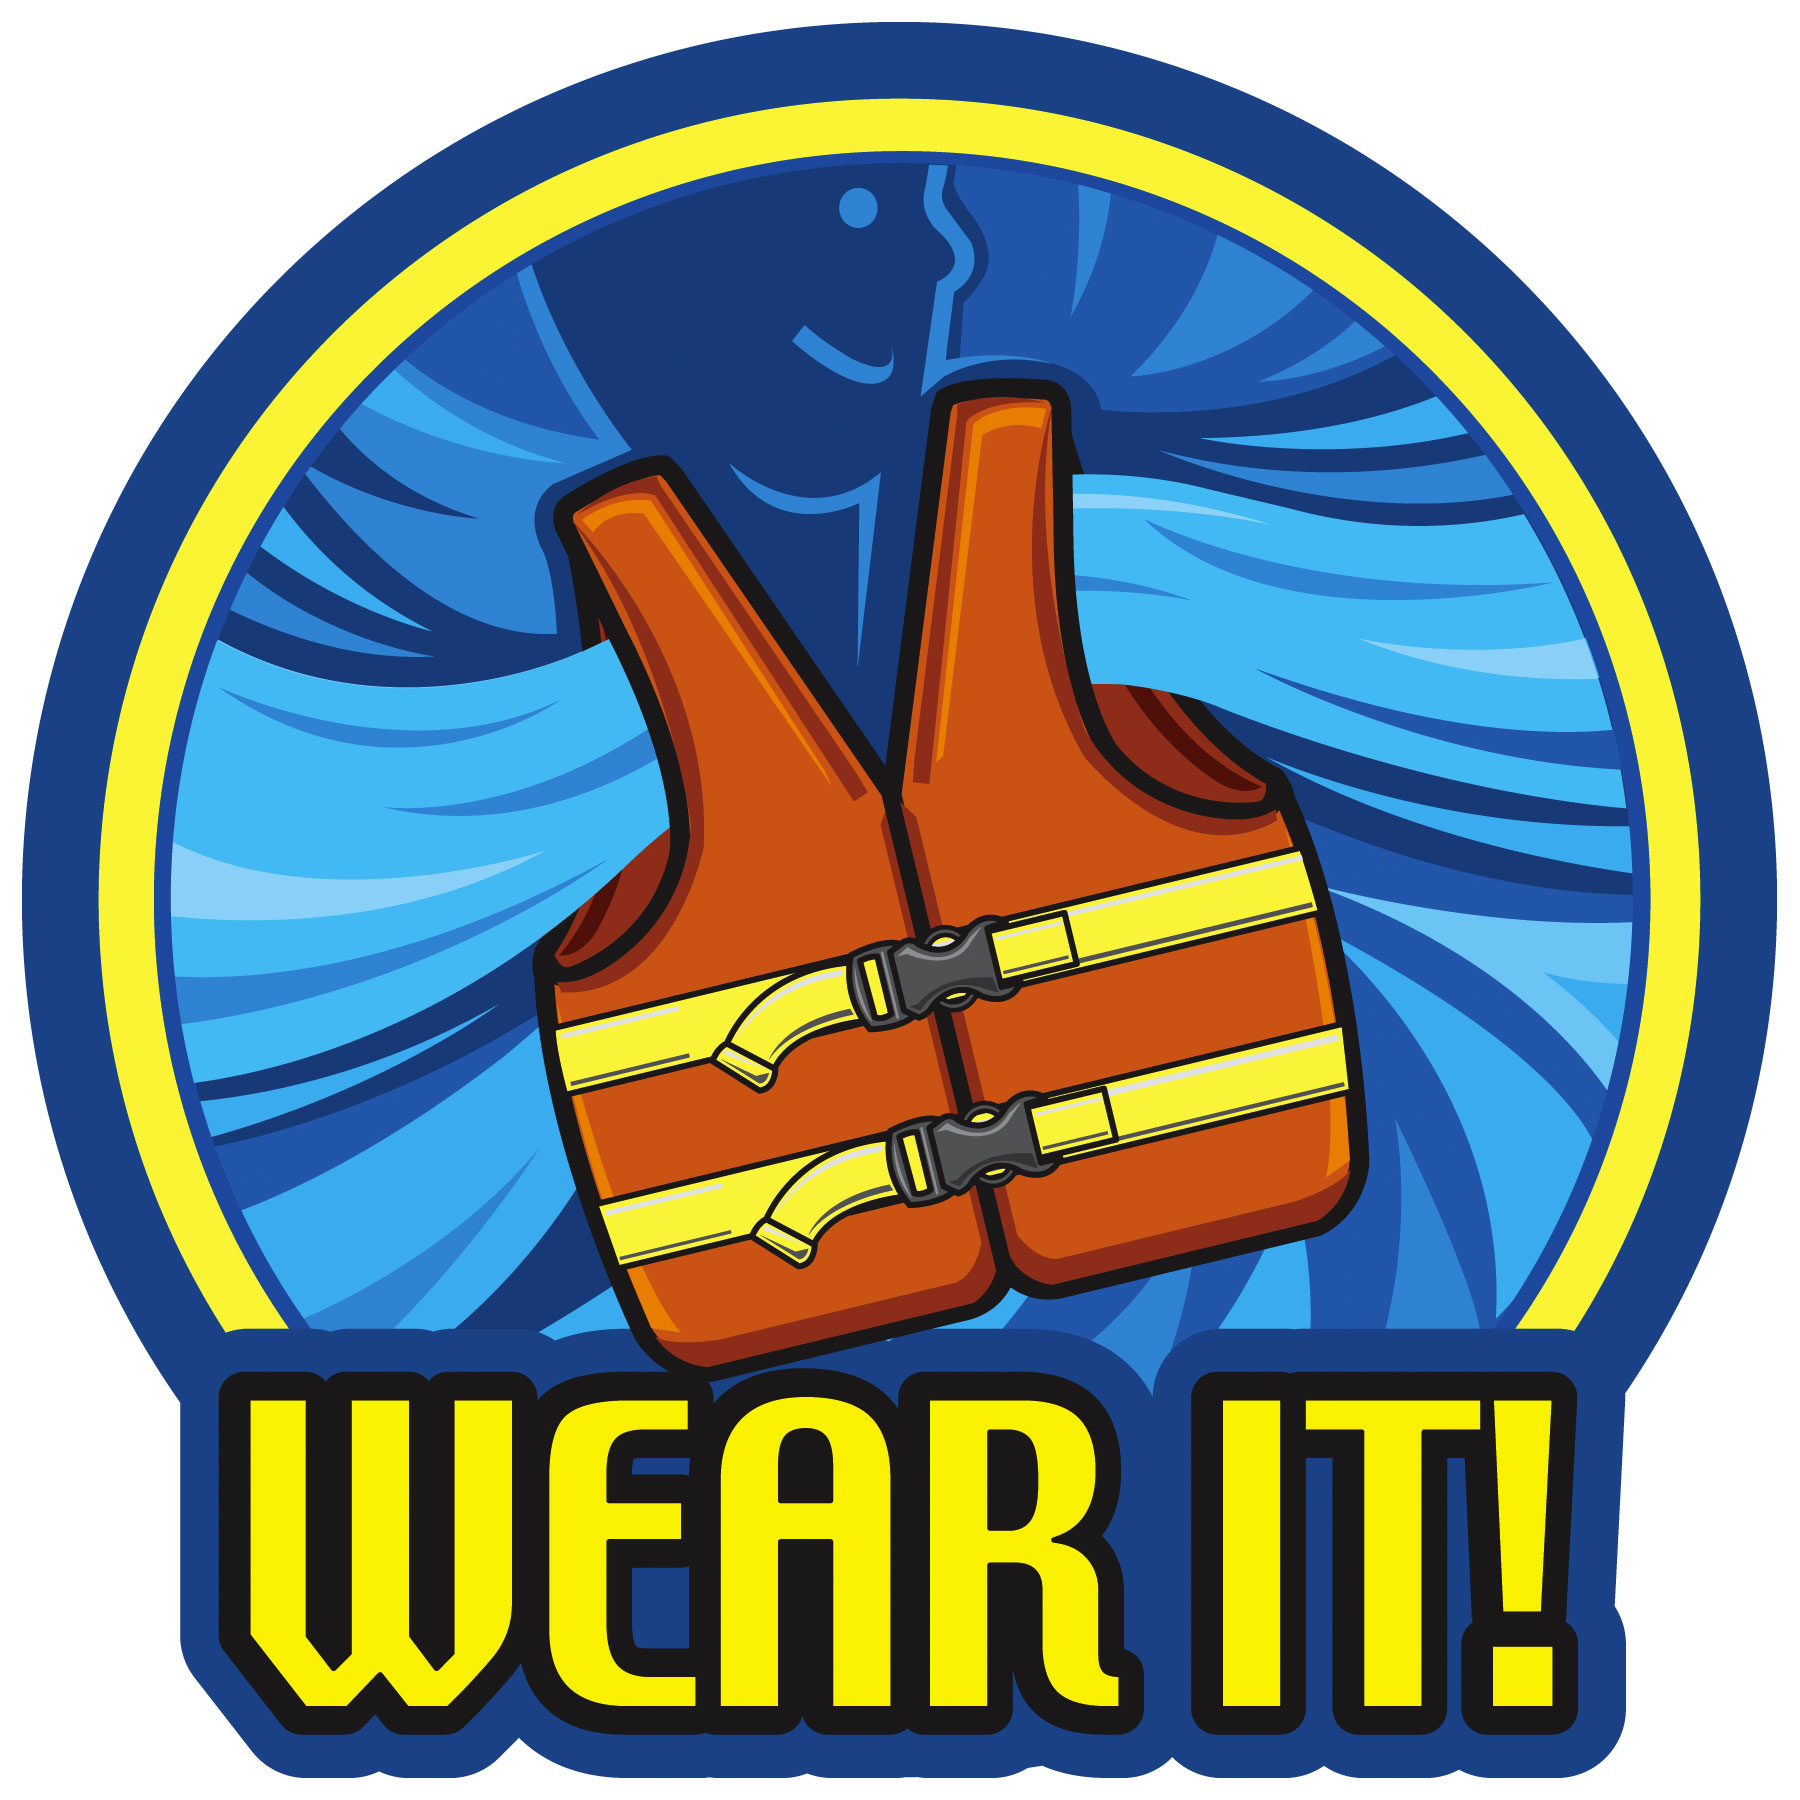 Boating clipart water safety. Boat emergency rescue stories